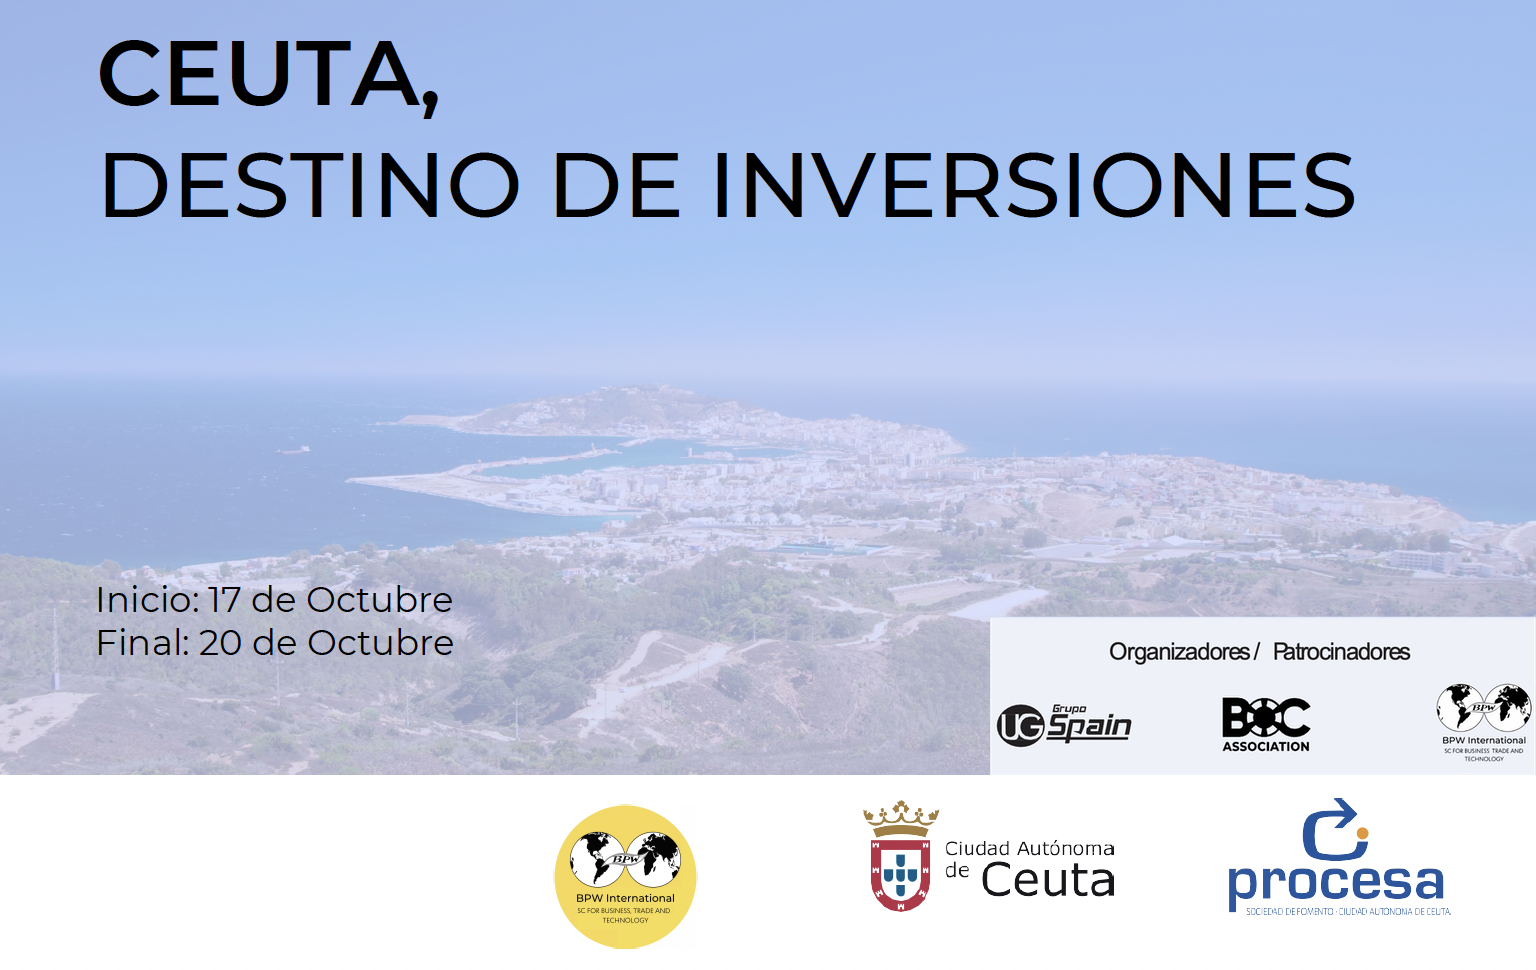 Ceuta, Destination of Investments - Conference with BPW International